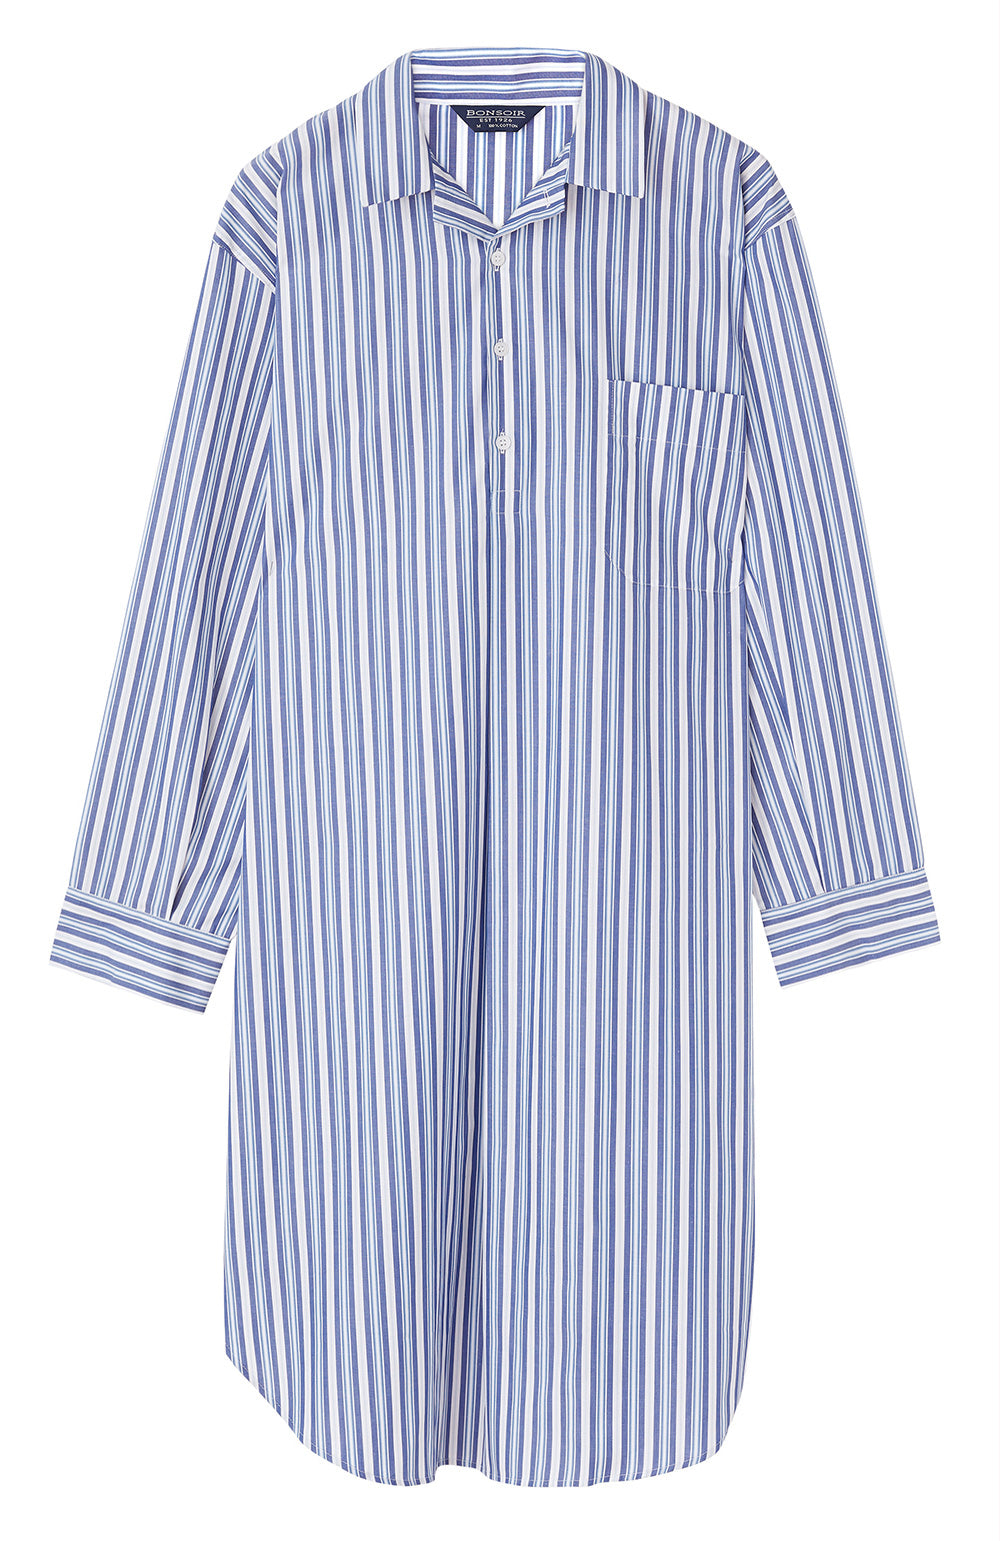 Men's Blue Tonal Stripe Classic Cotton Nightshirt | Bonsoir of London